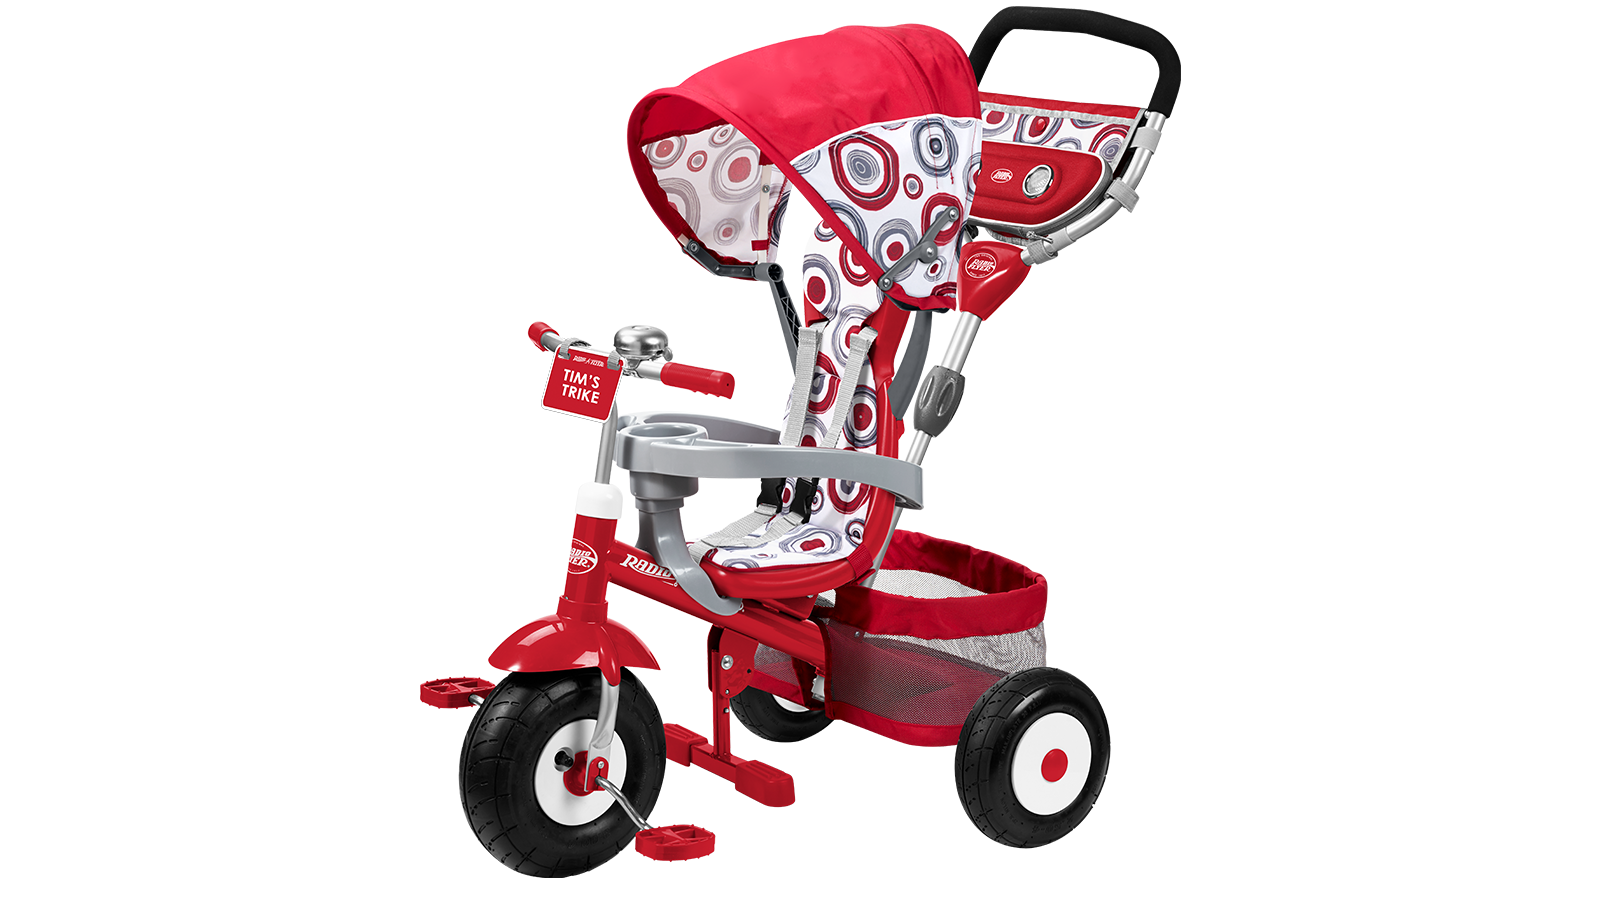 Radio flyer png. Heritage history customizing your